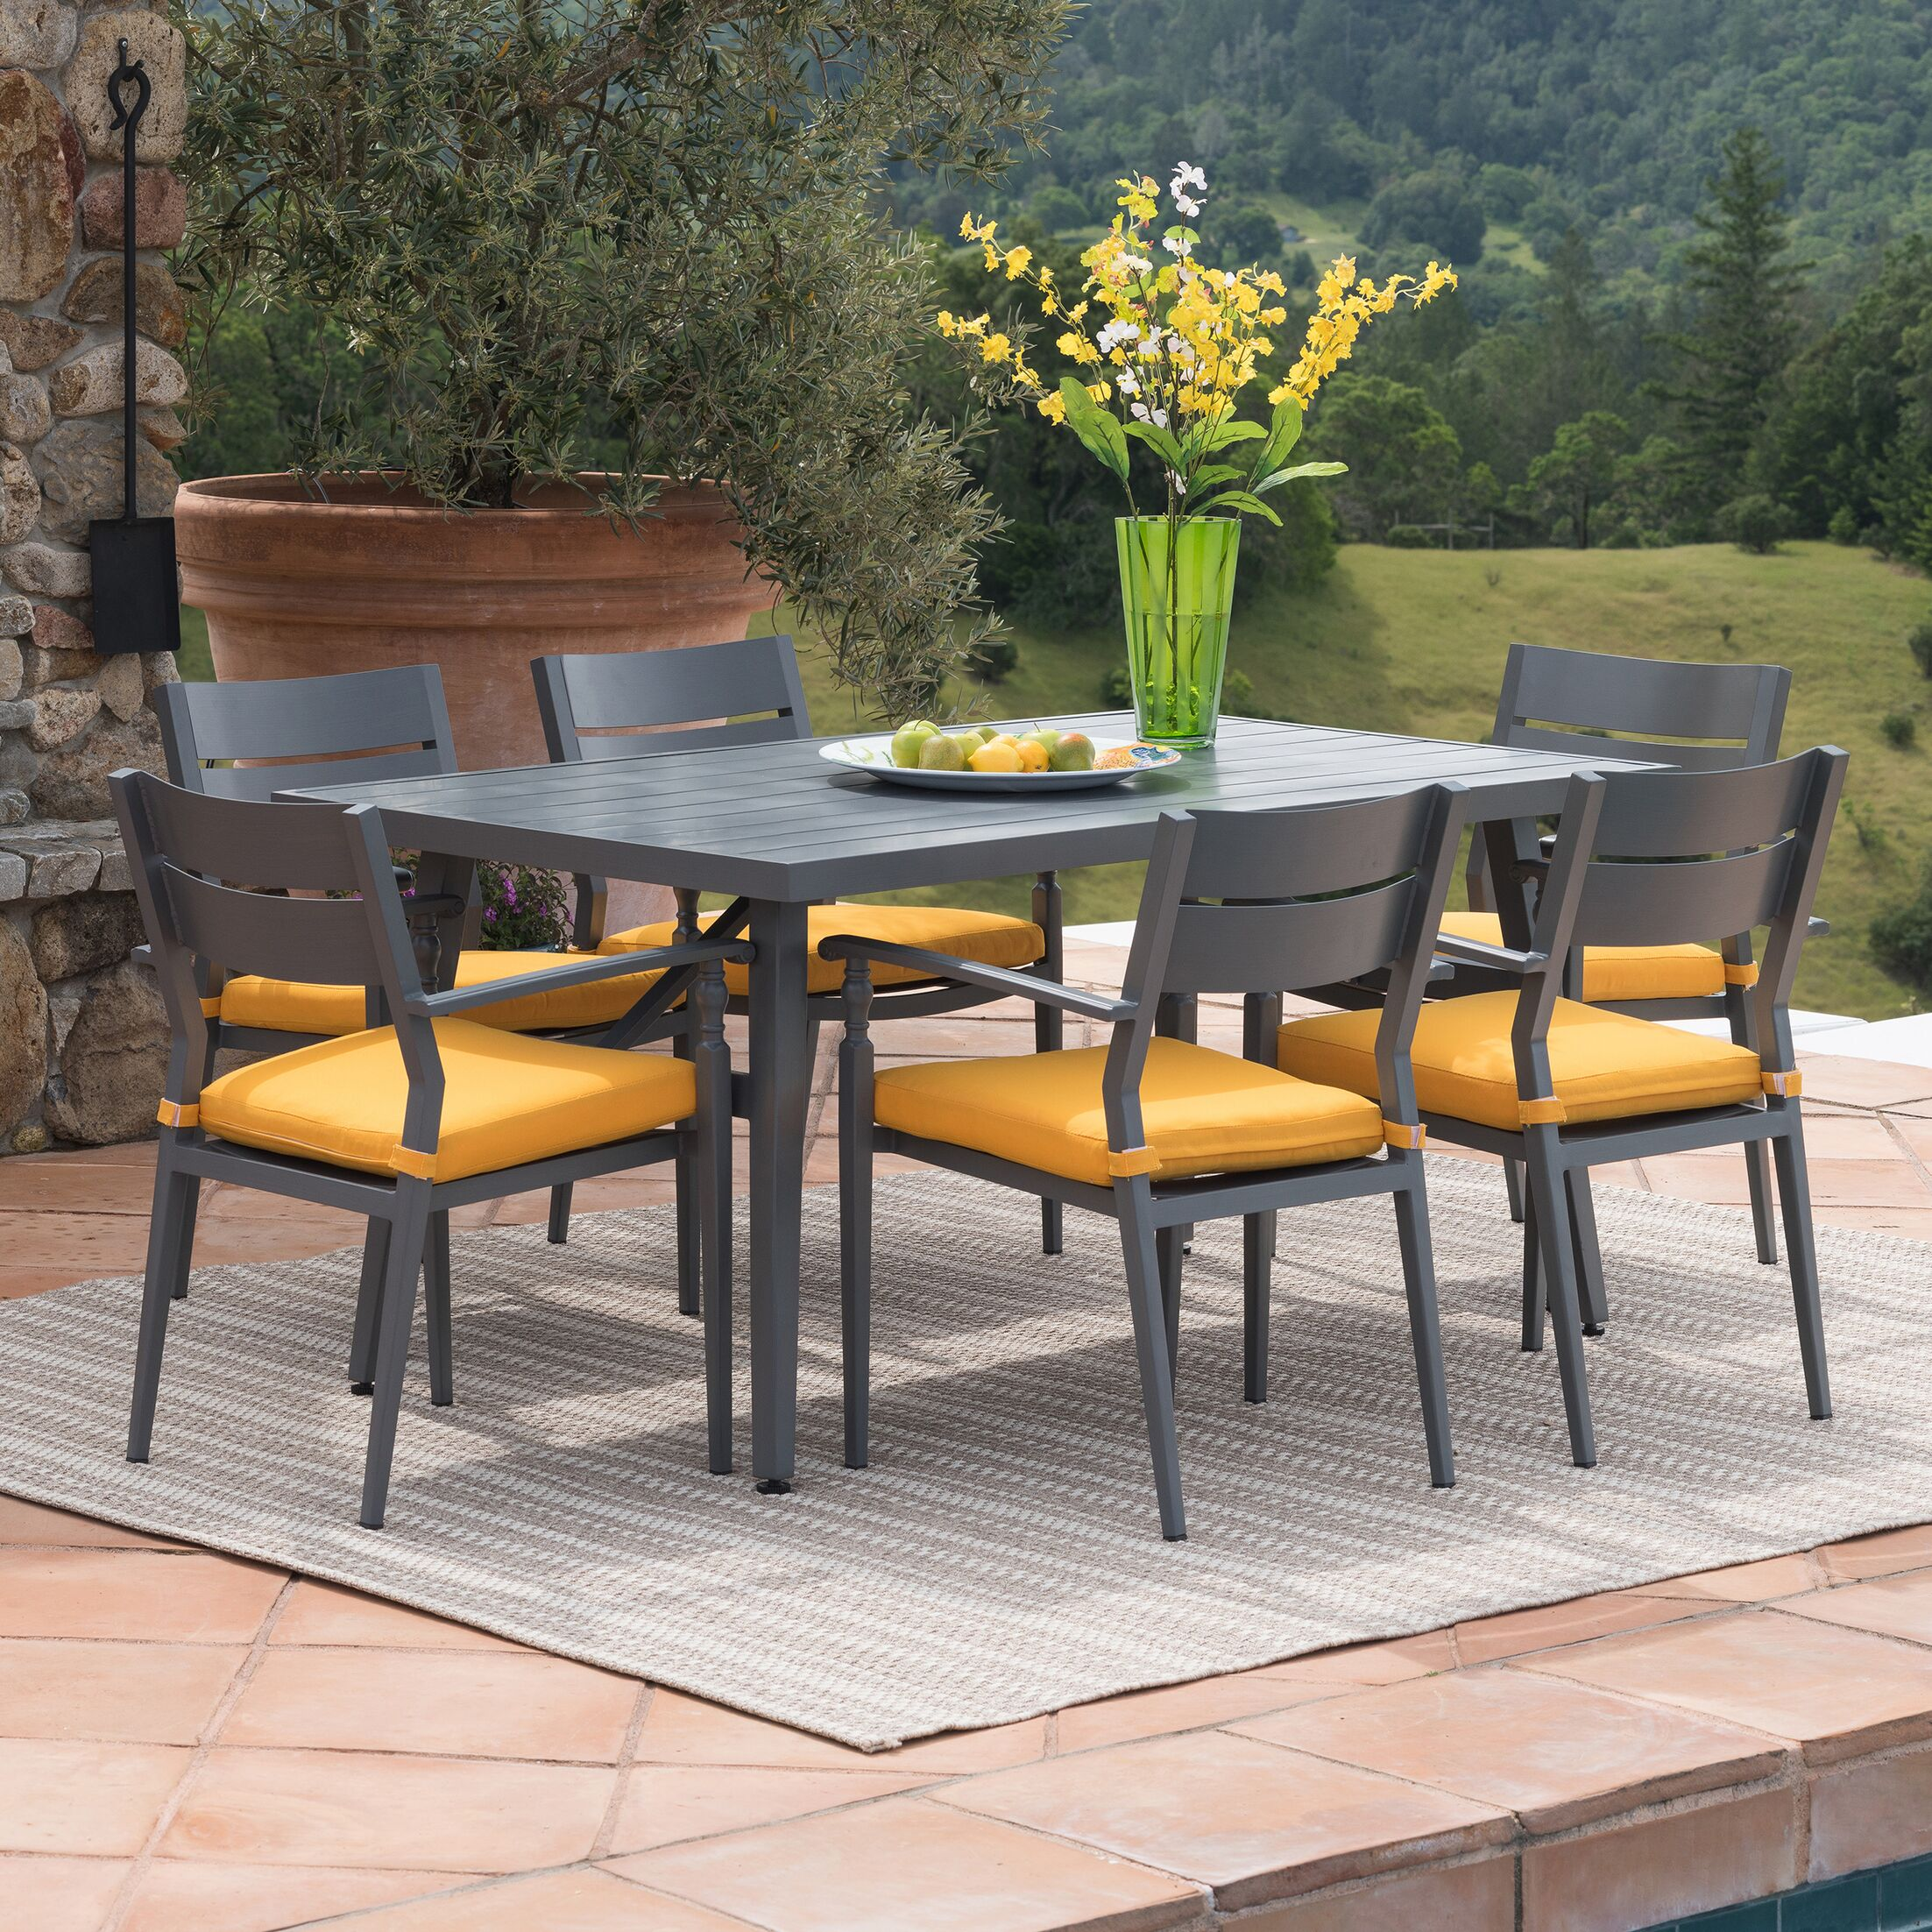 Lee-Robinson 7 Piece Dining Set with Cushions Color: Sunset�Yellow